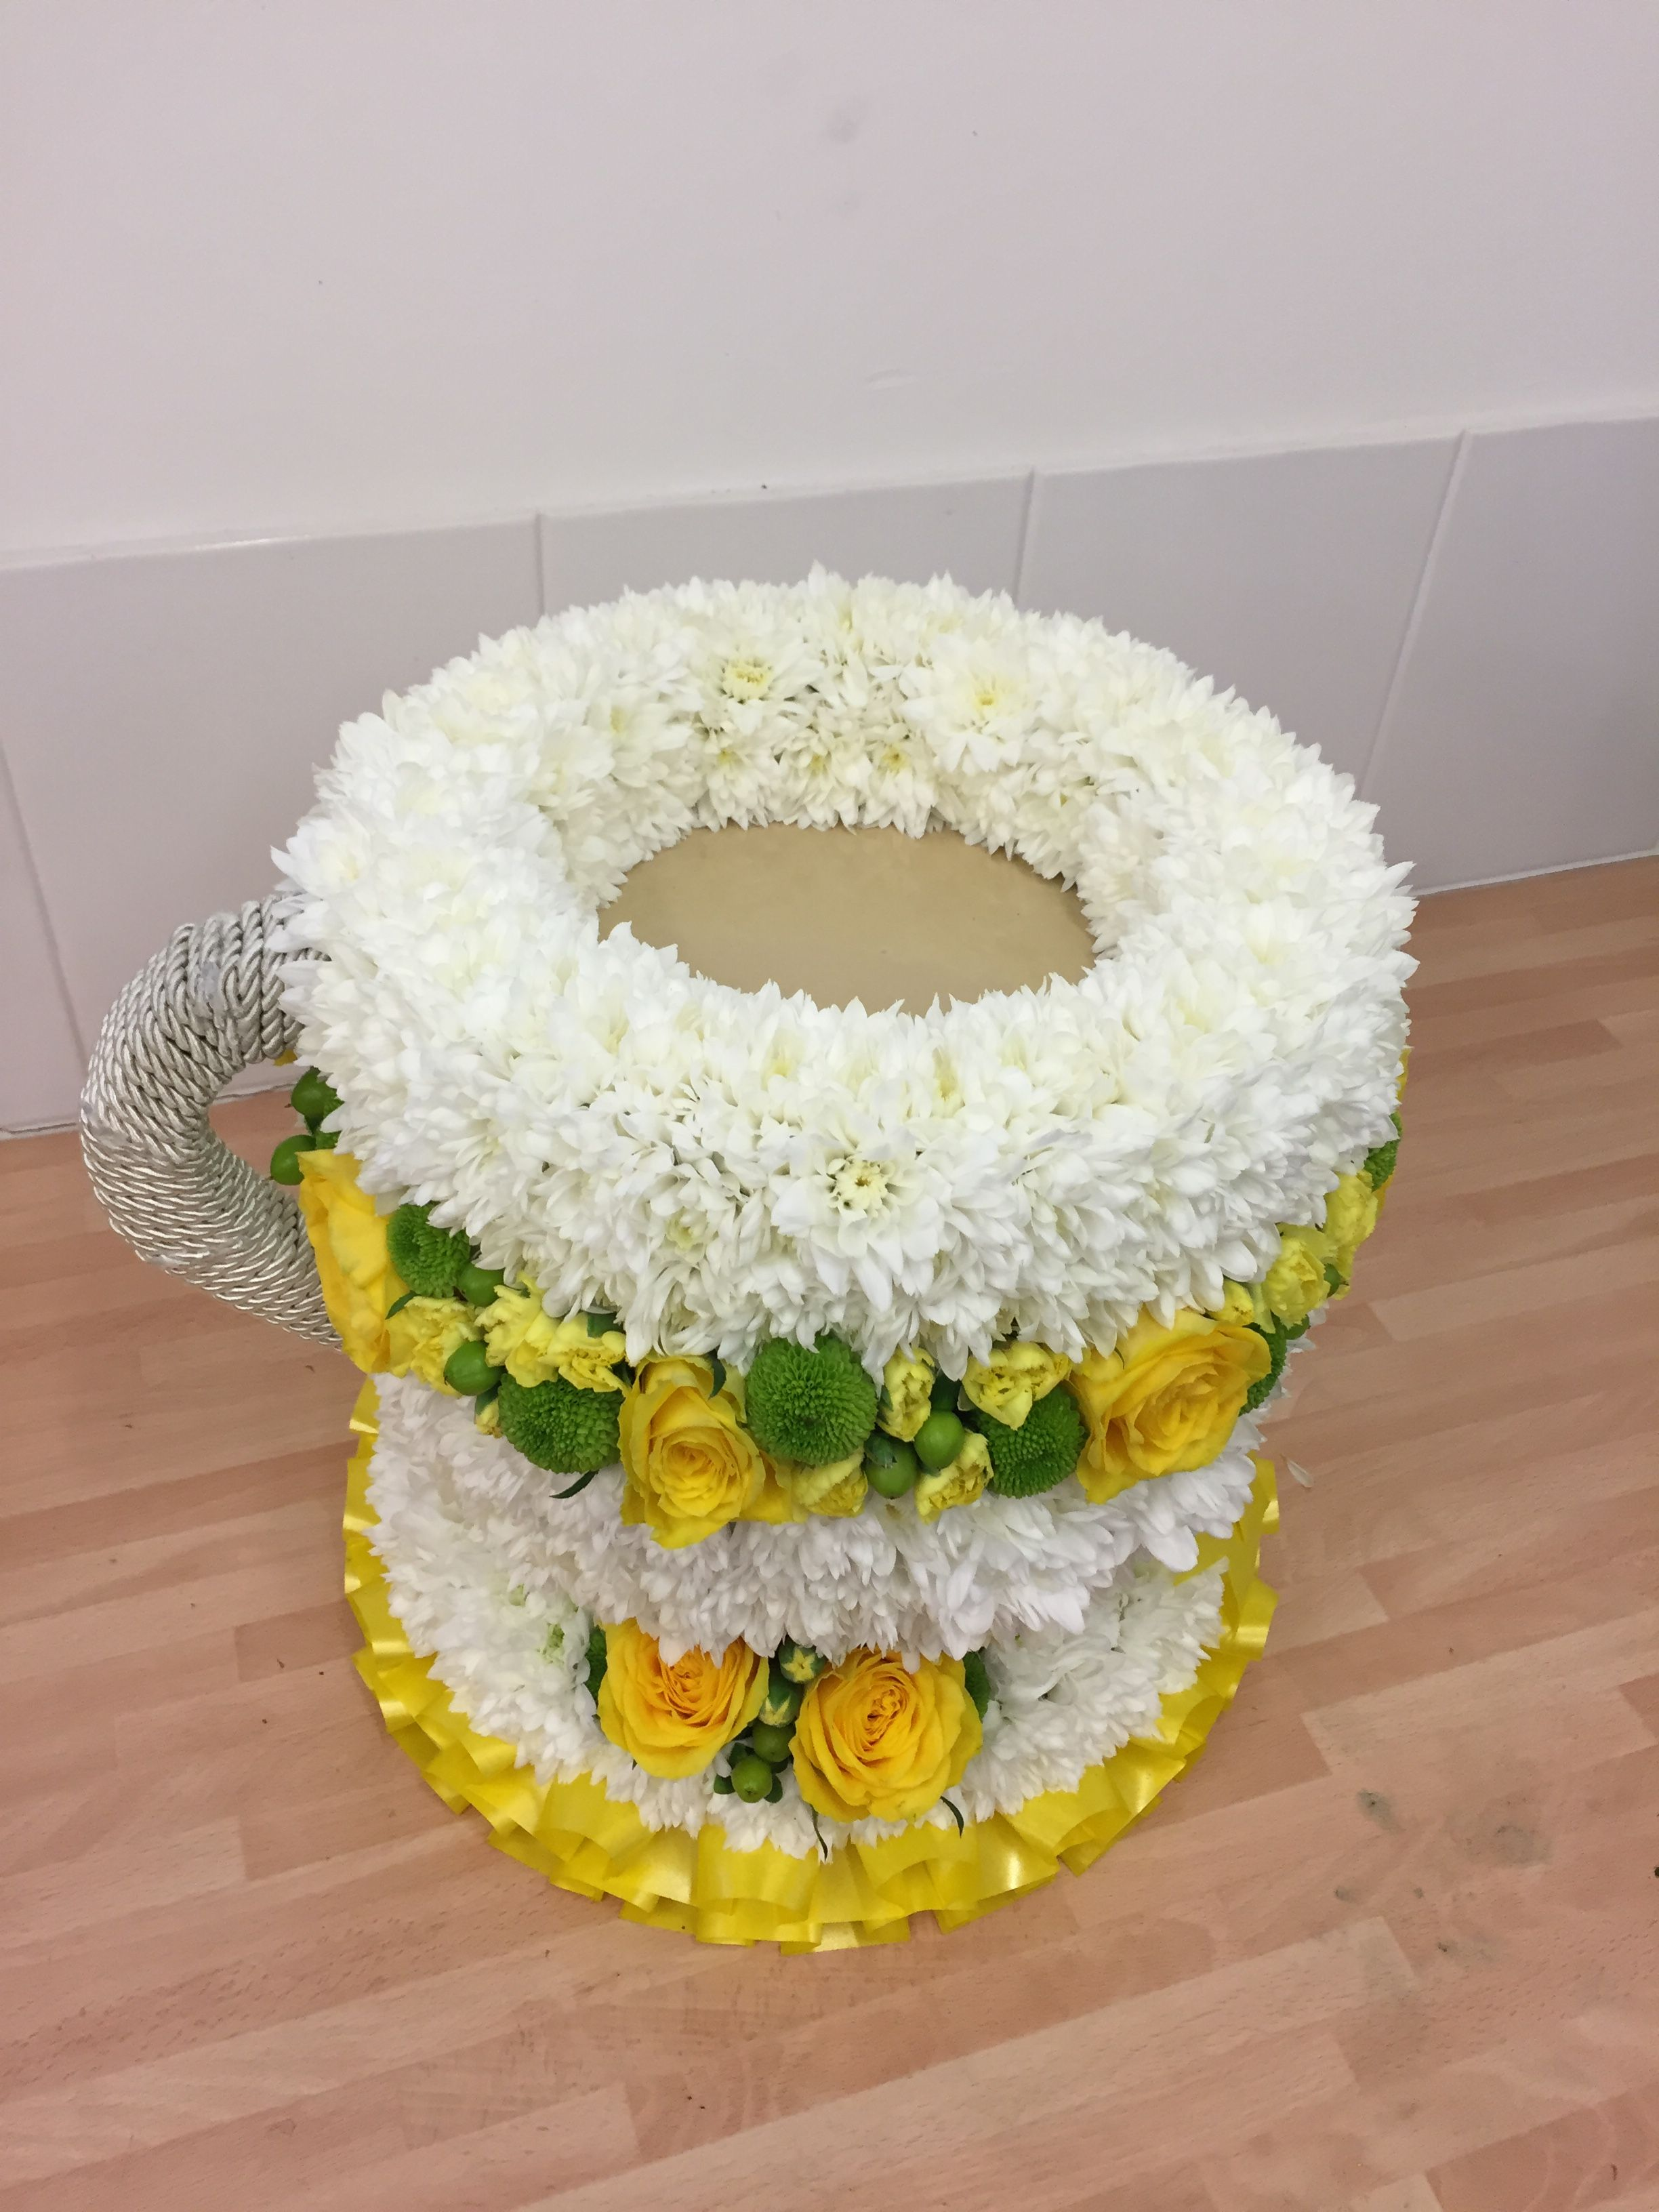 Cup of tea teacup yellow and white funeral tribute a pretty cup of tea teacup yellow and white funeral tribute a pretty alternative to traditional sympathy wreath flowers izmirmasajfo